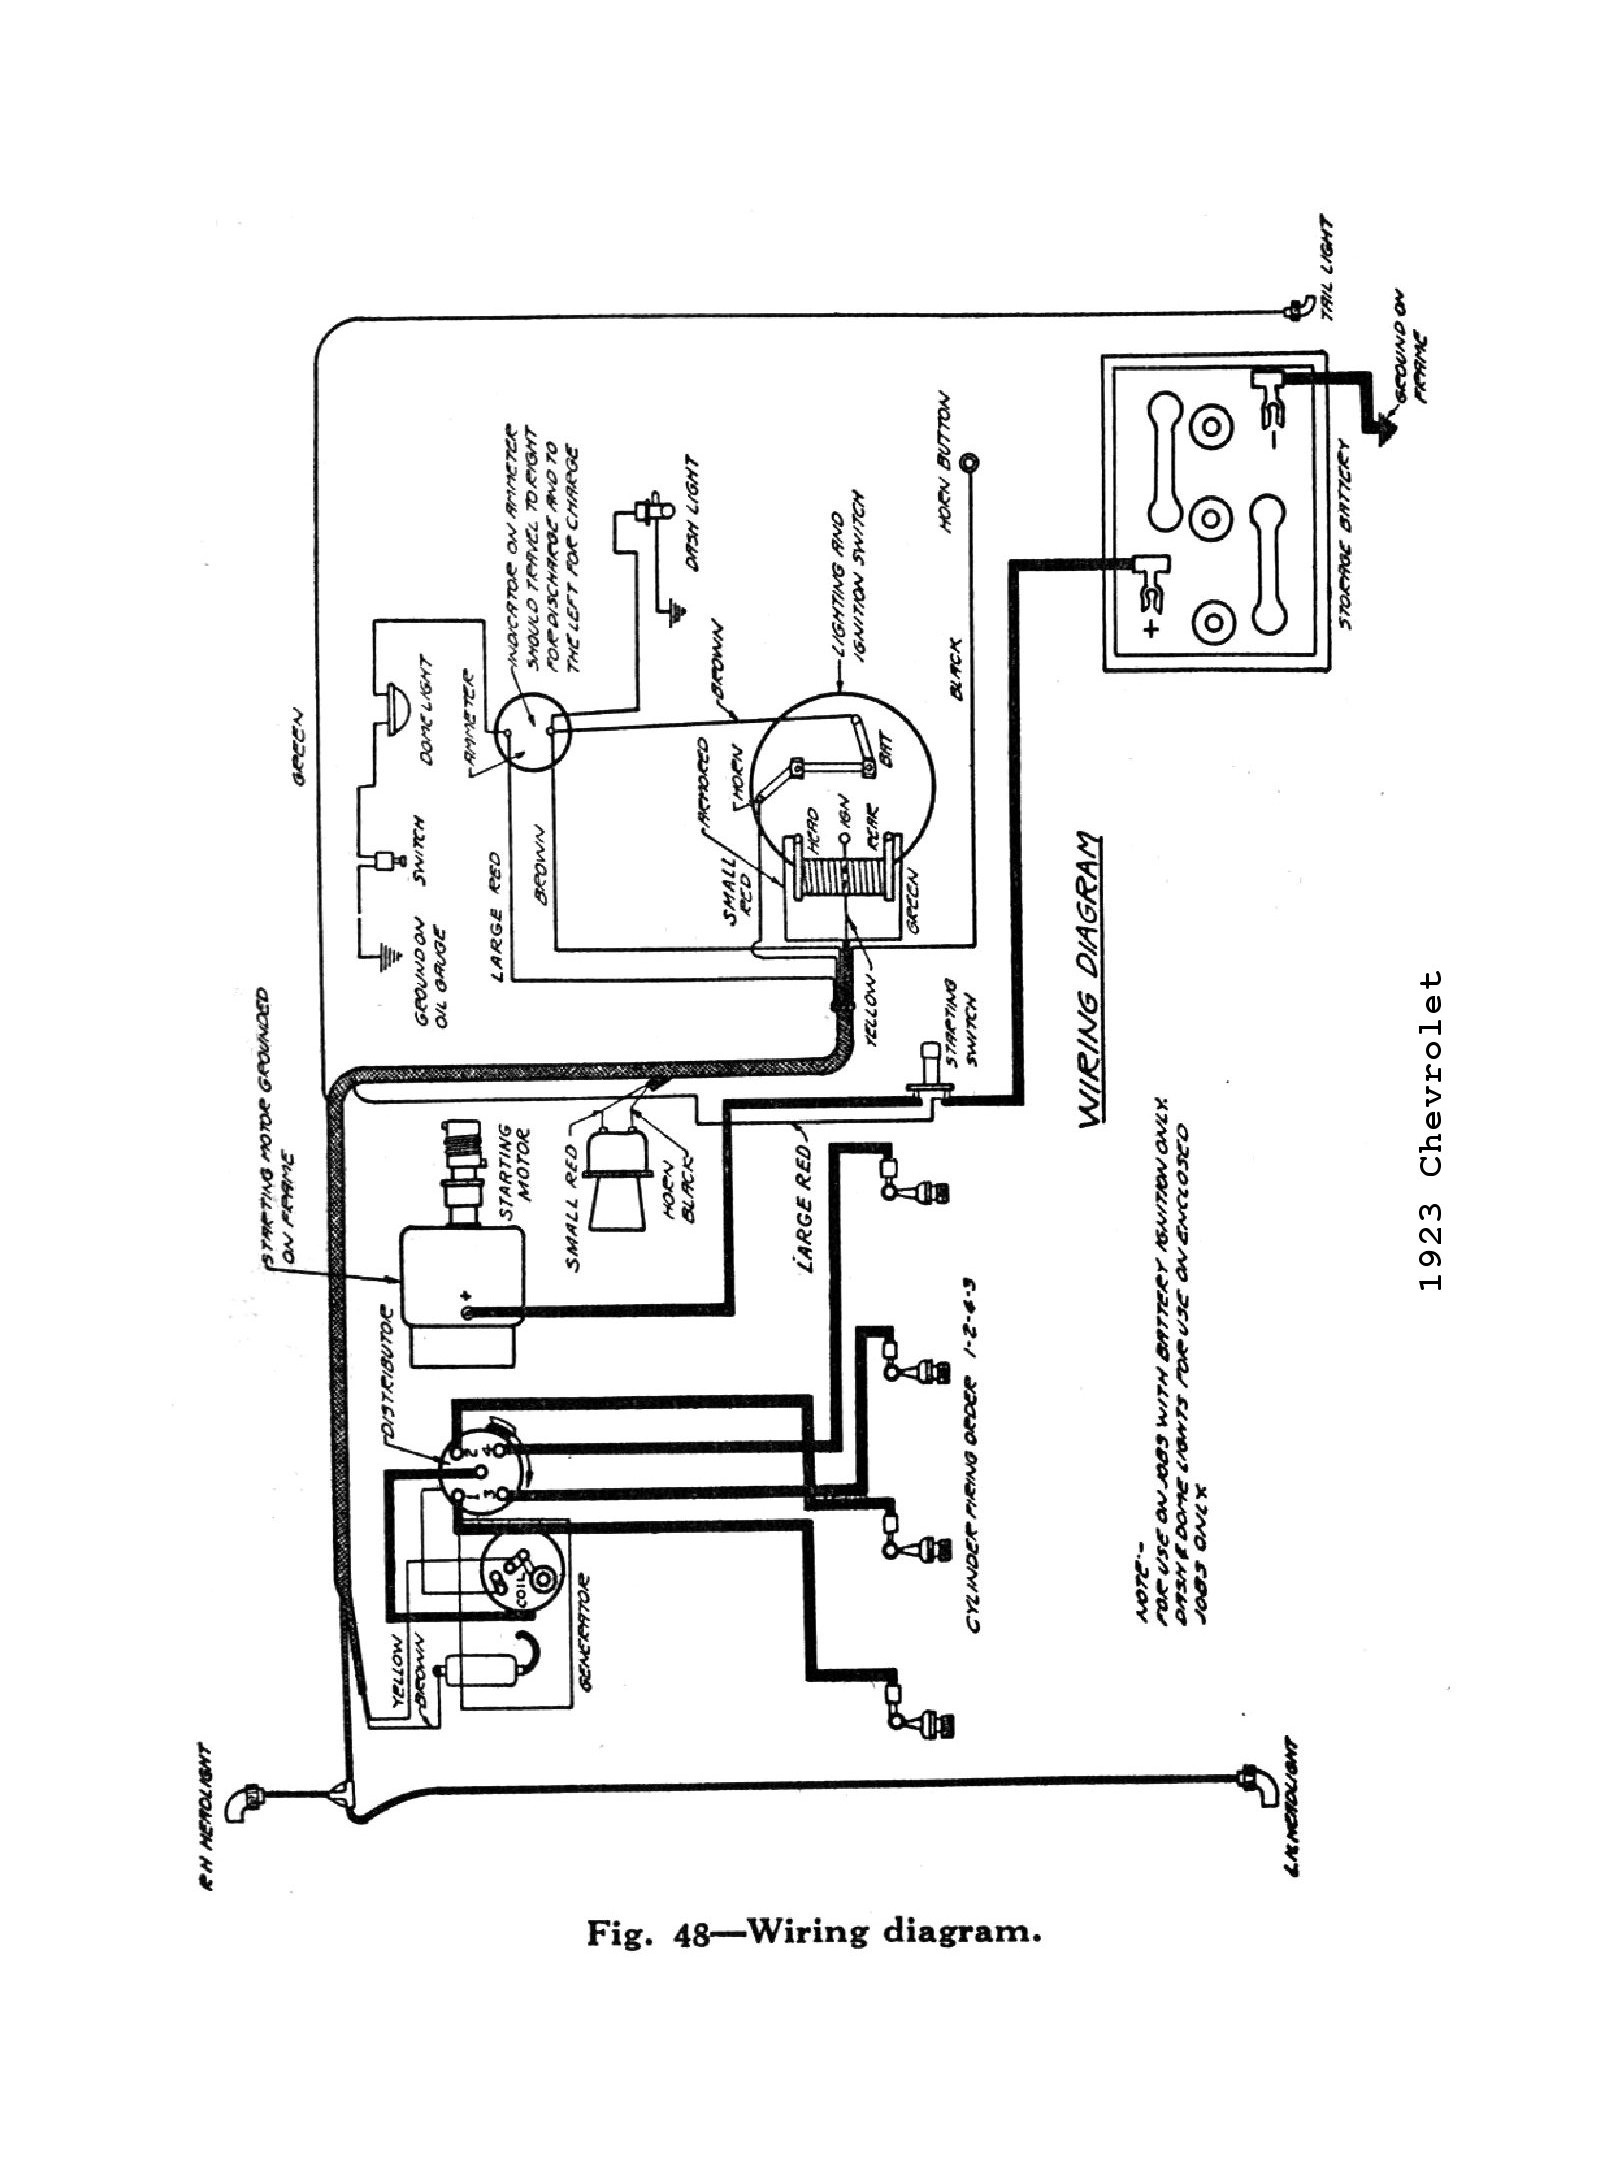 small resolution of 1934 ford wiring diagram wiring diagrams 1955 dodge wiring diagram 1934 ford wiring diagram